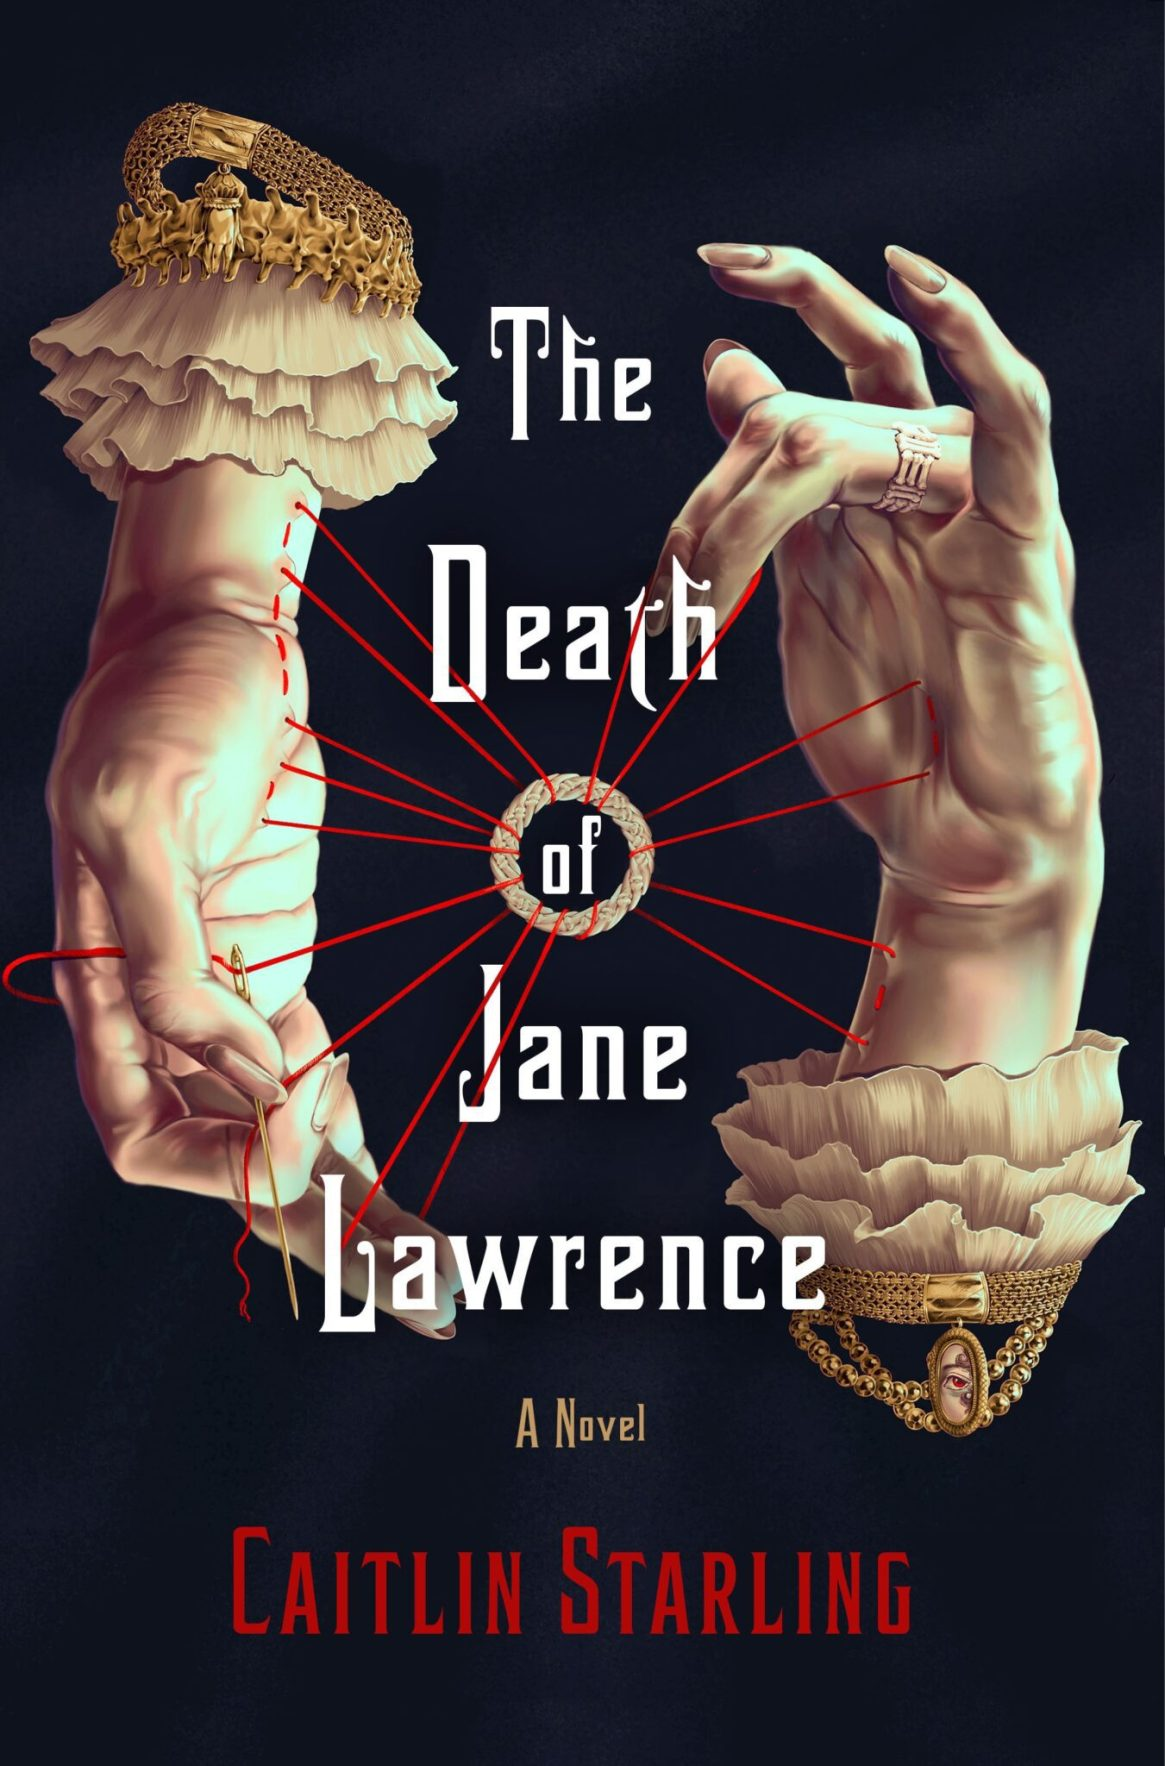 Caitlin Starling: Five Things I Learned Writing The Death of Jane Lawrence